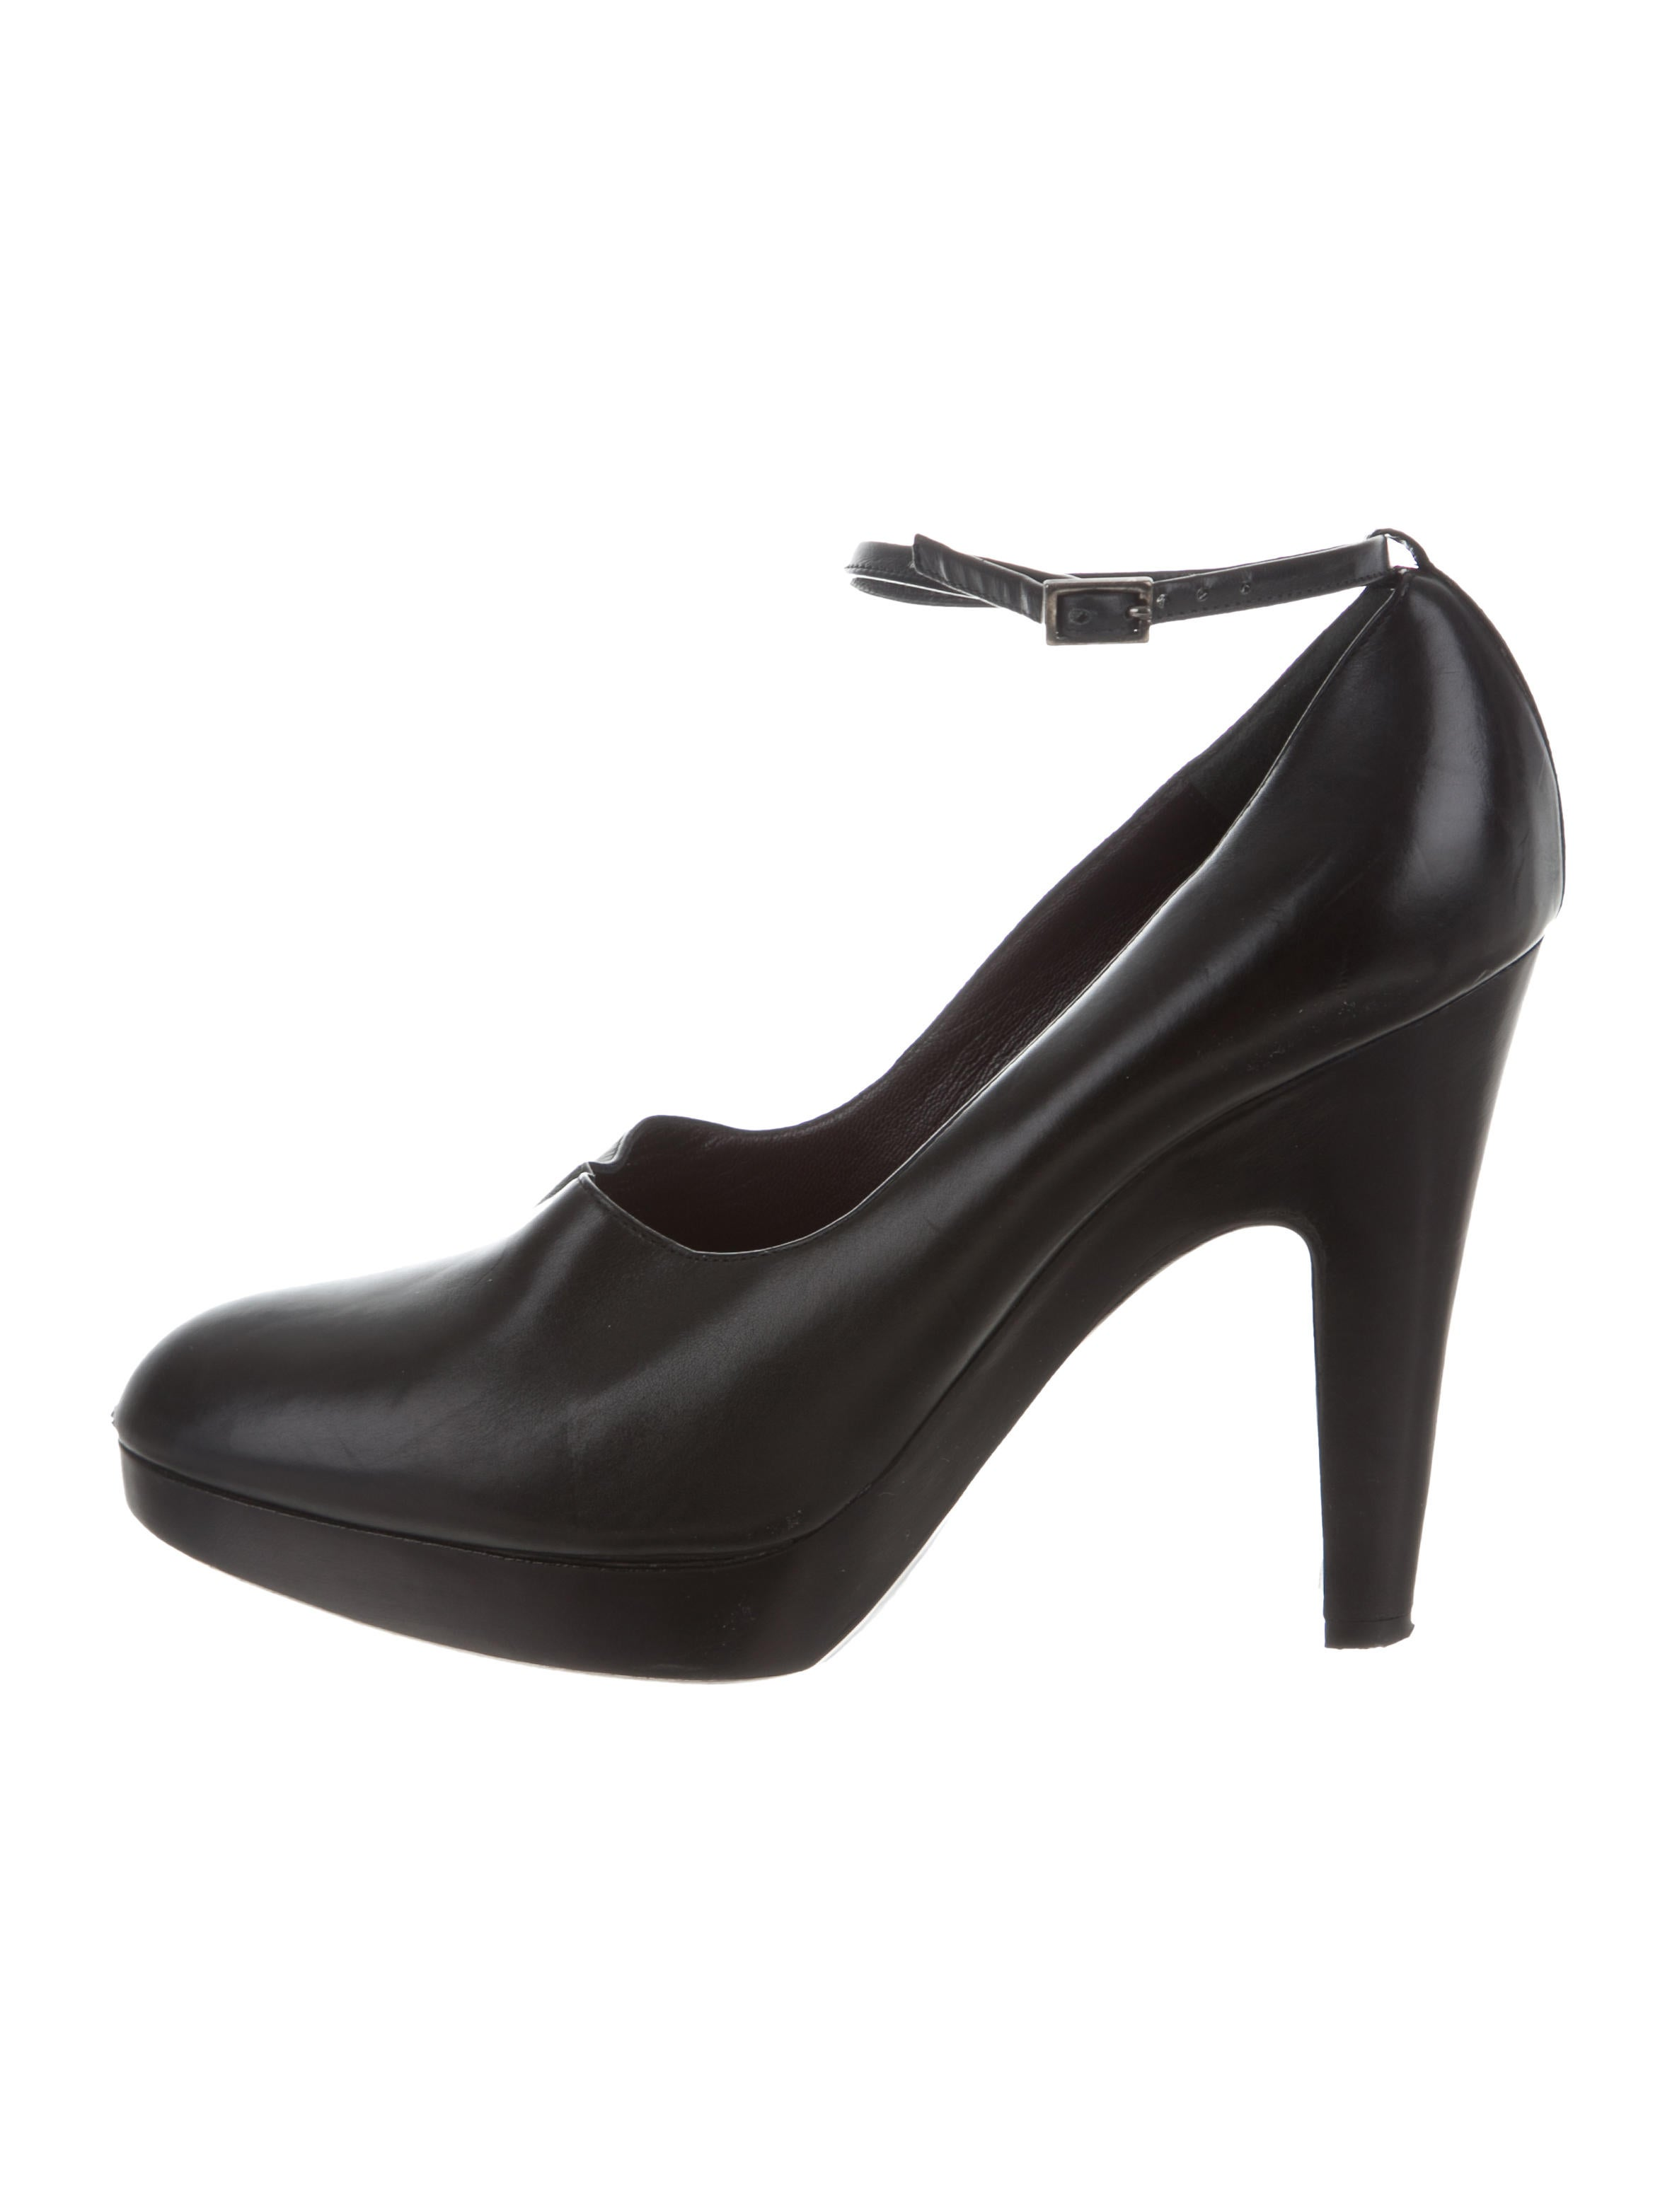 Jil Sander Leather Round-Toe Pumps pre order for sale cheap deals cheap footlocker pictures footlocker finishline for sale ALued2zT08